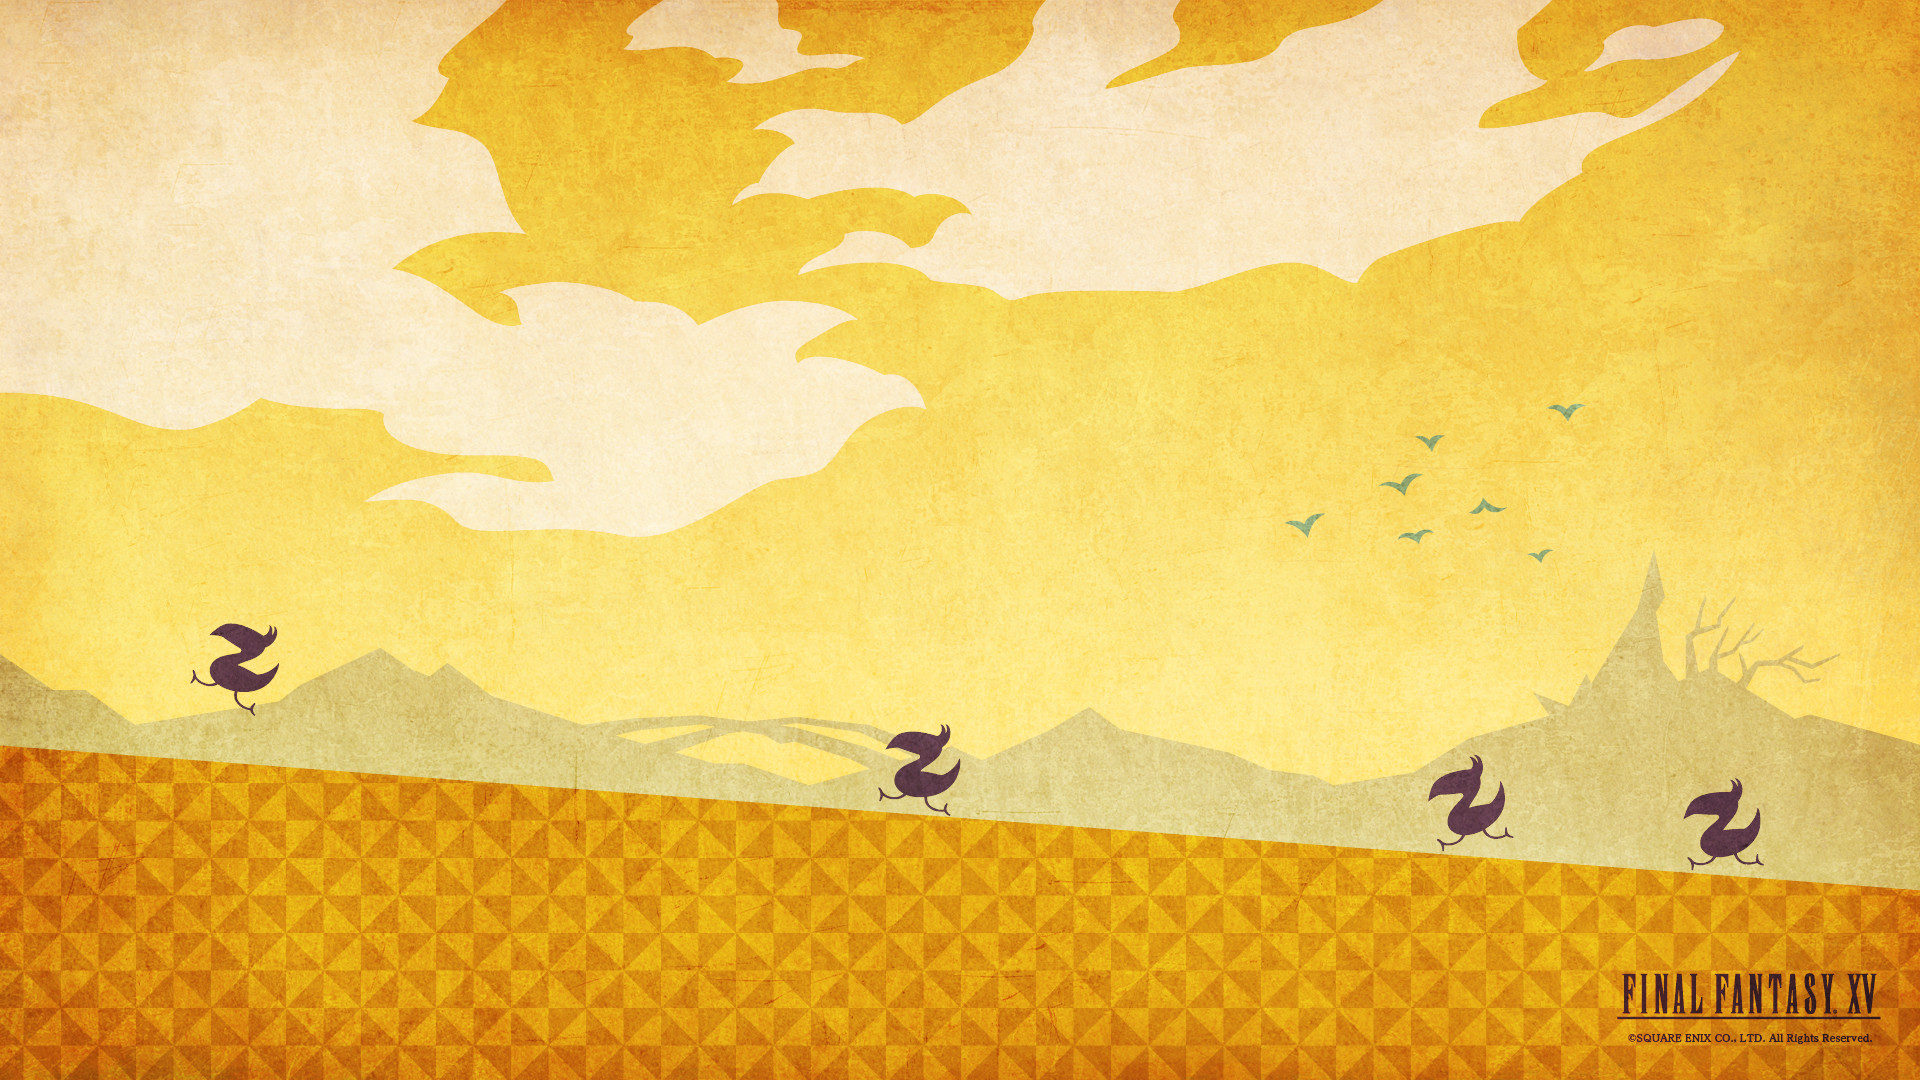 Chocobo themed wallpapers thanks to Final Fantasy XV!